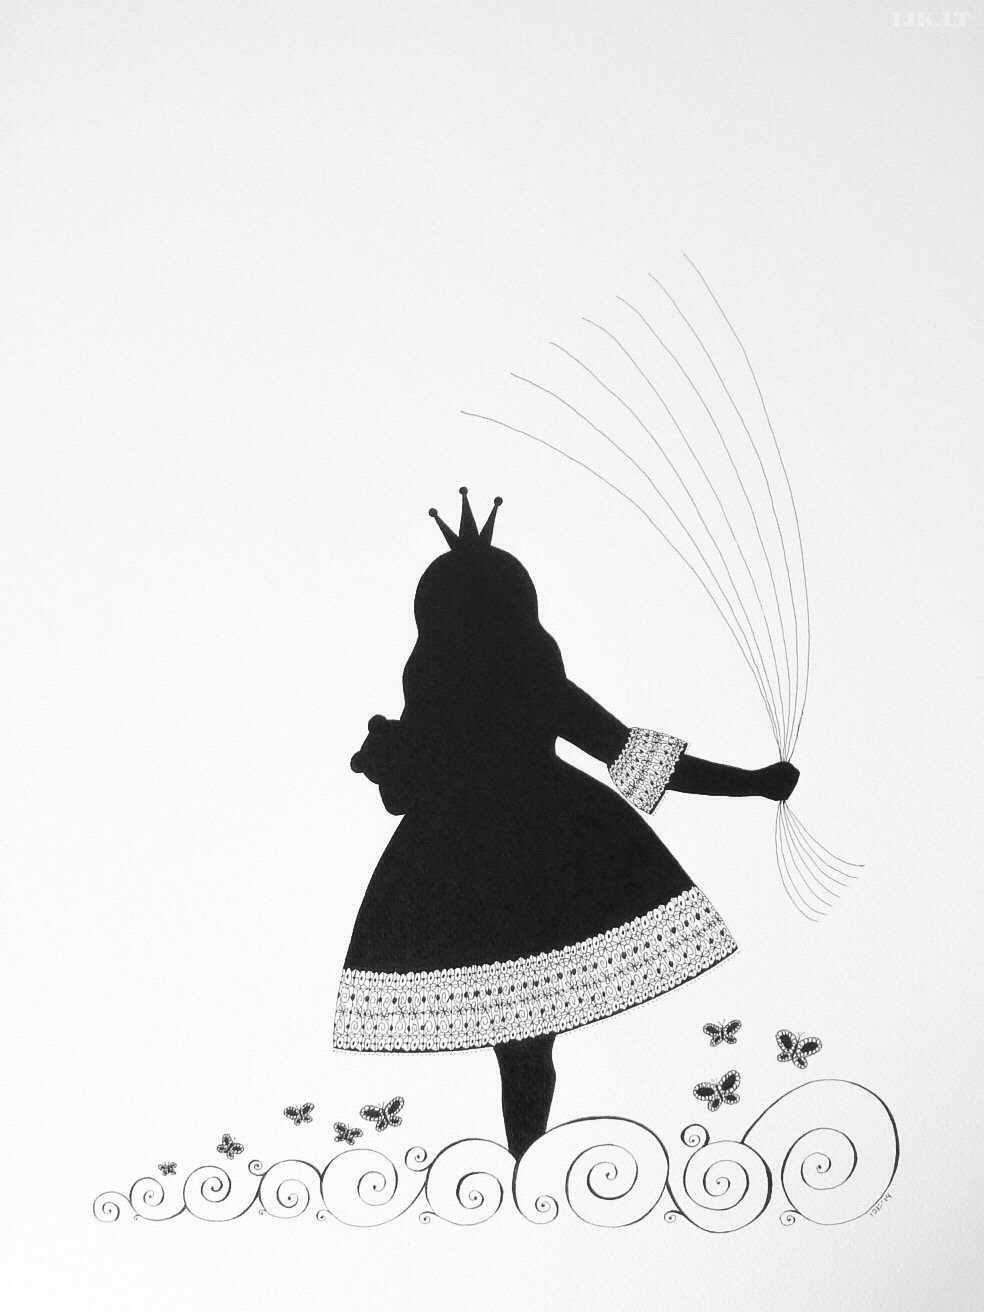 Picture for guests fingerprints and wishes, princess with baloons, baptism, little girl birthday